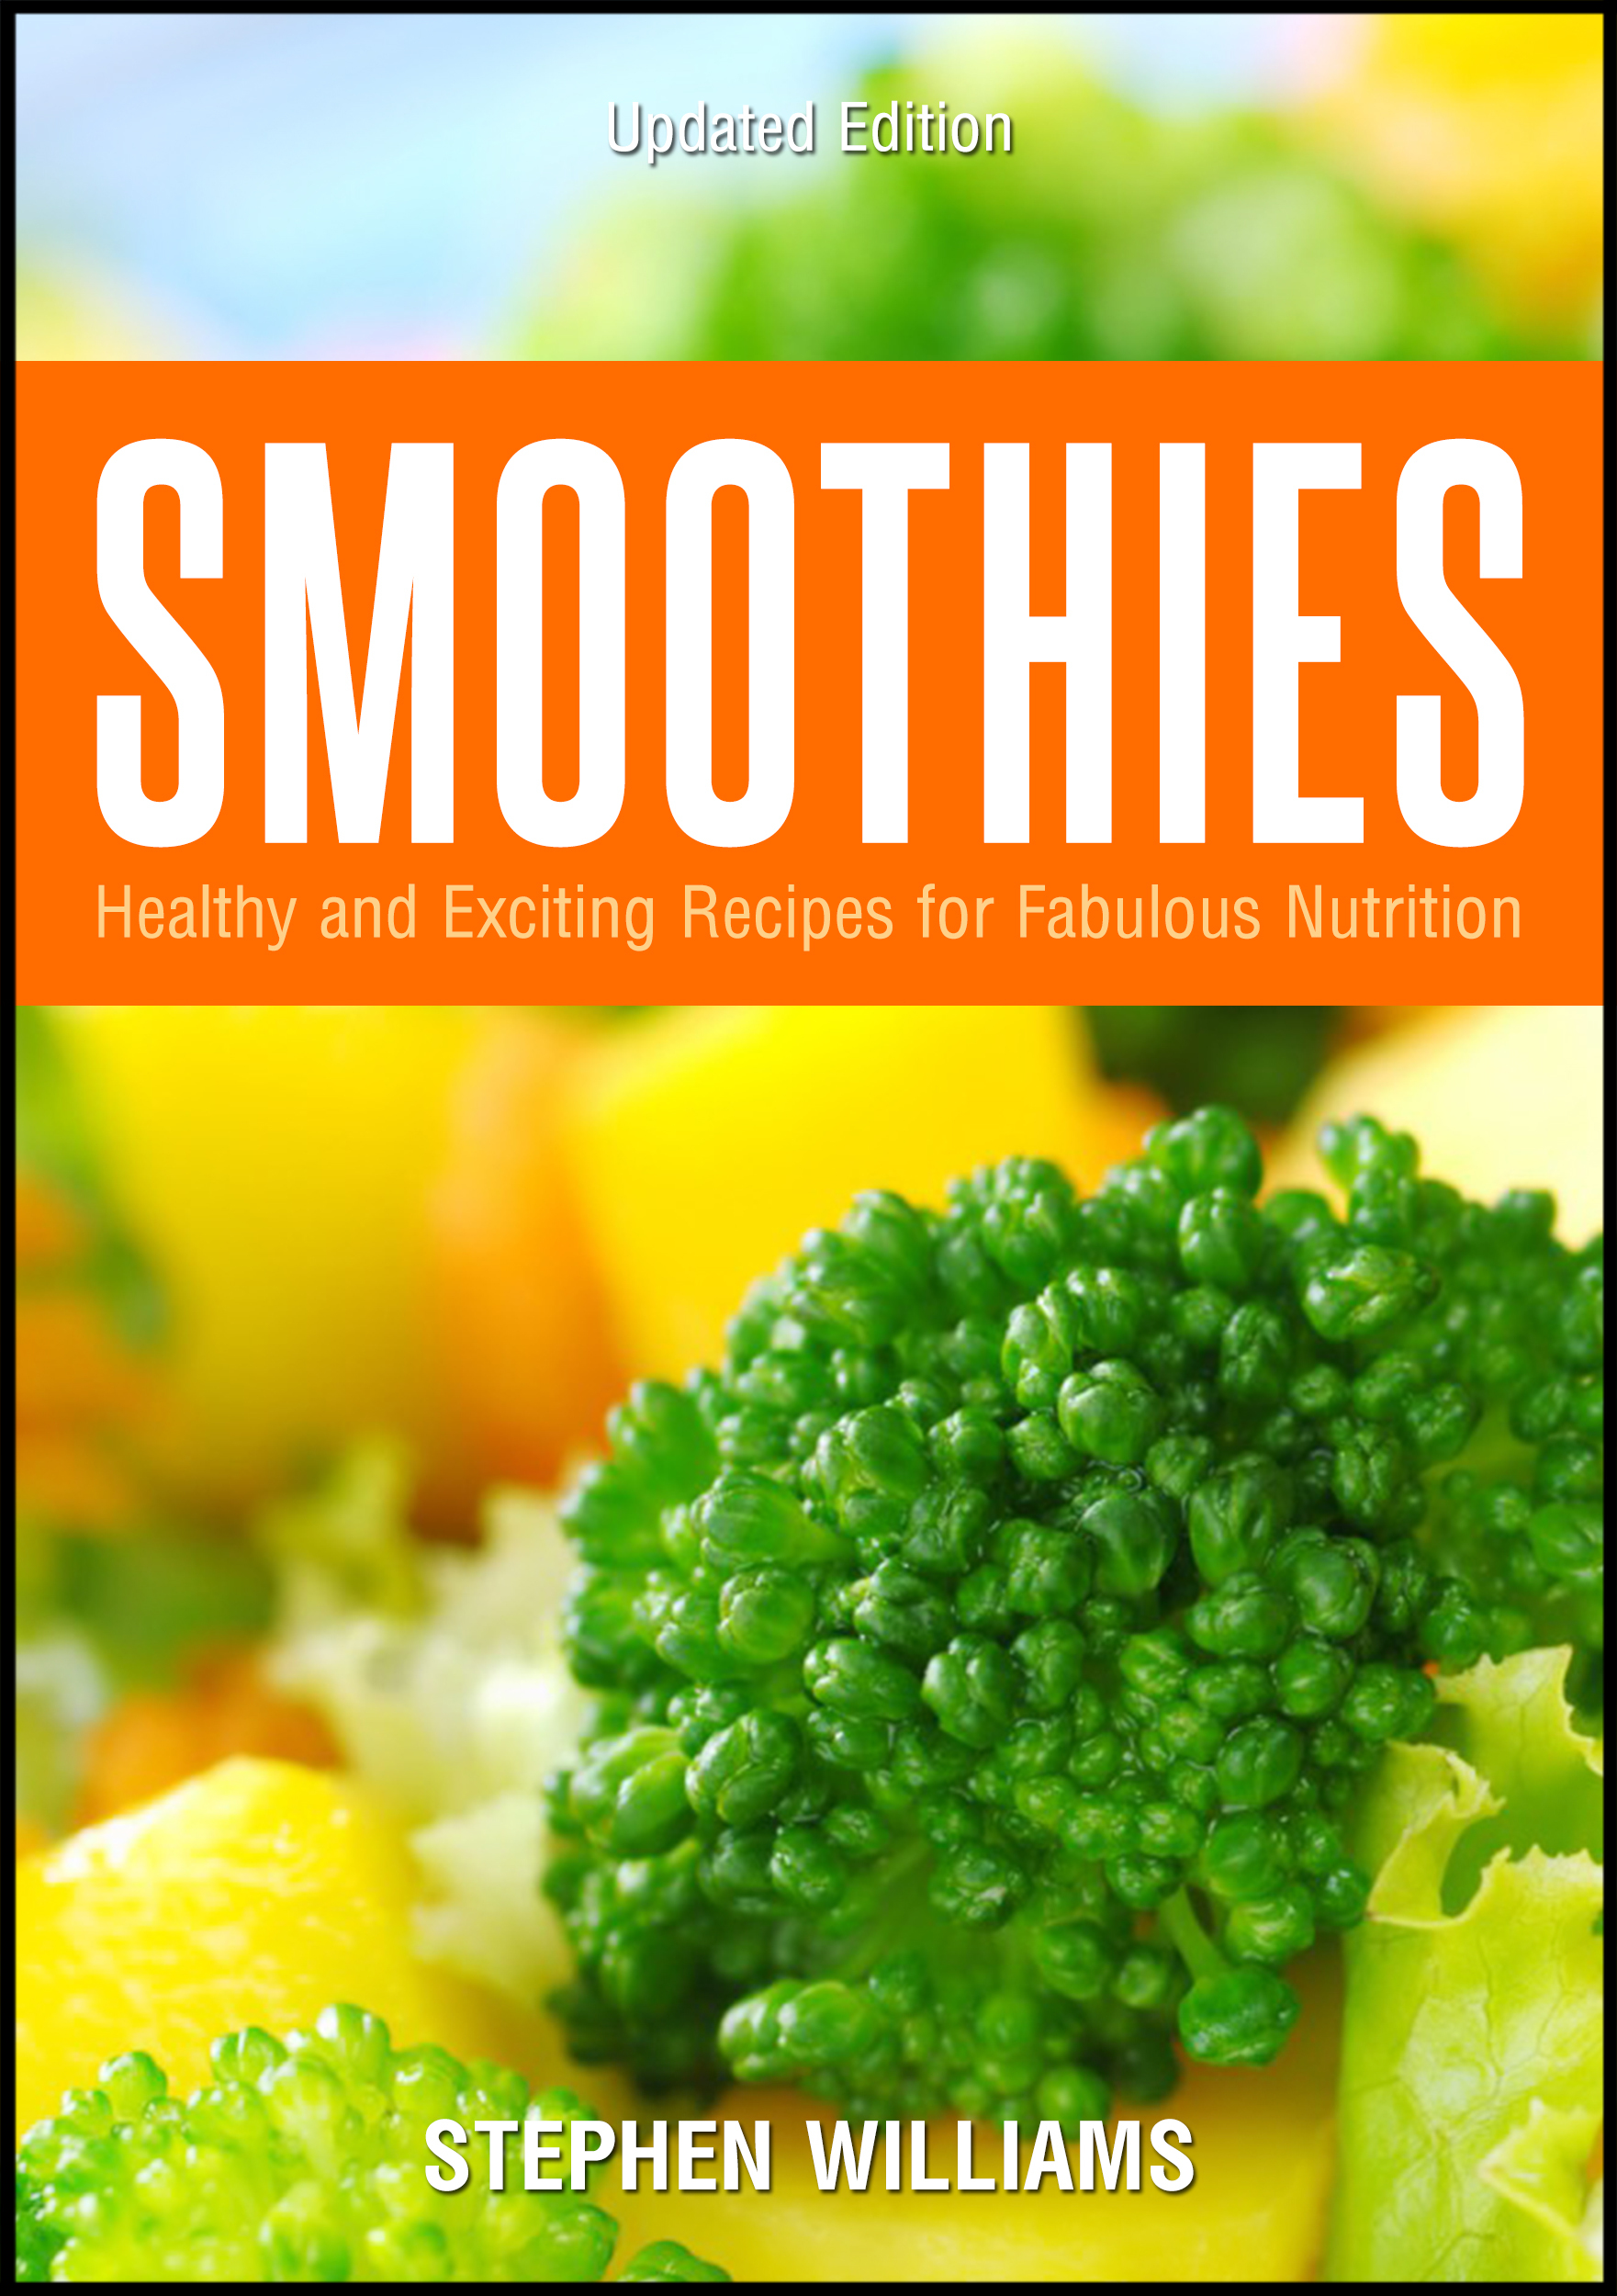 Smoothies: Healthy and Exciting Recipes for Fabulous Nutrition